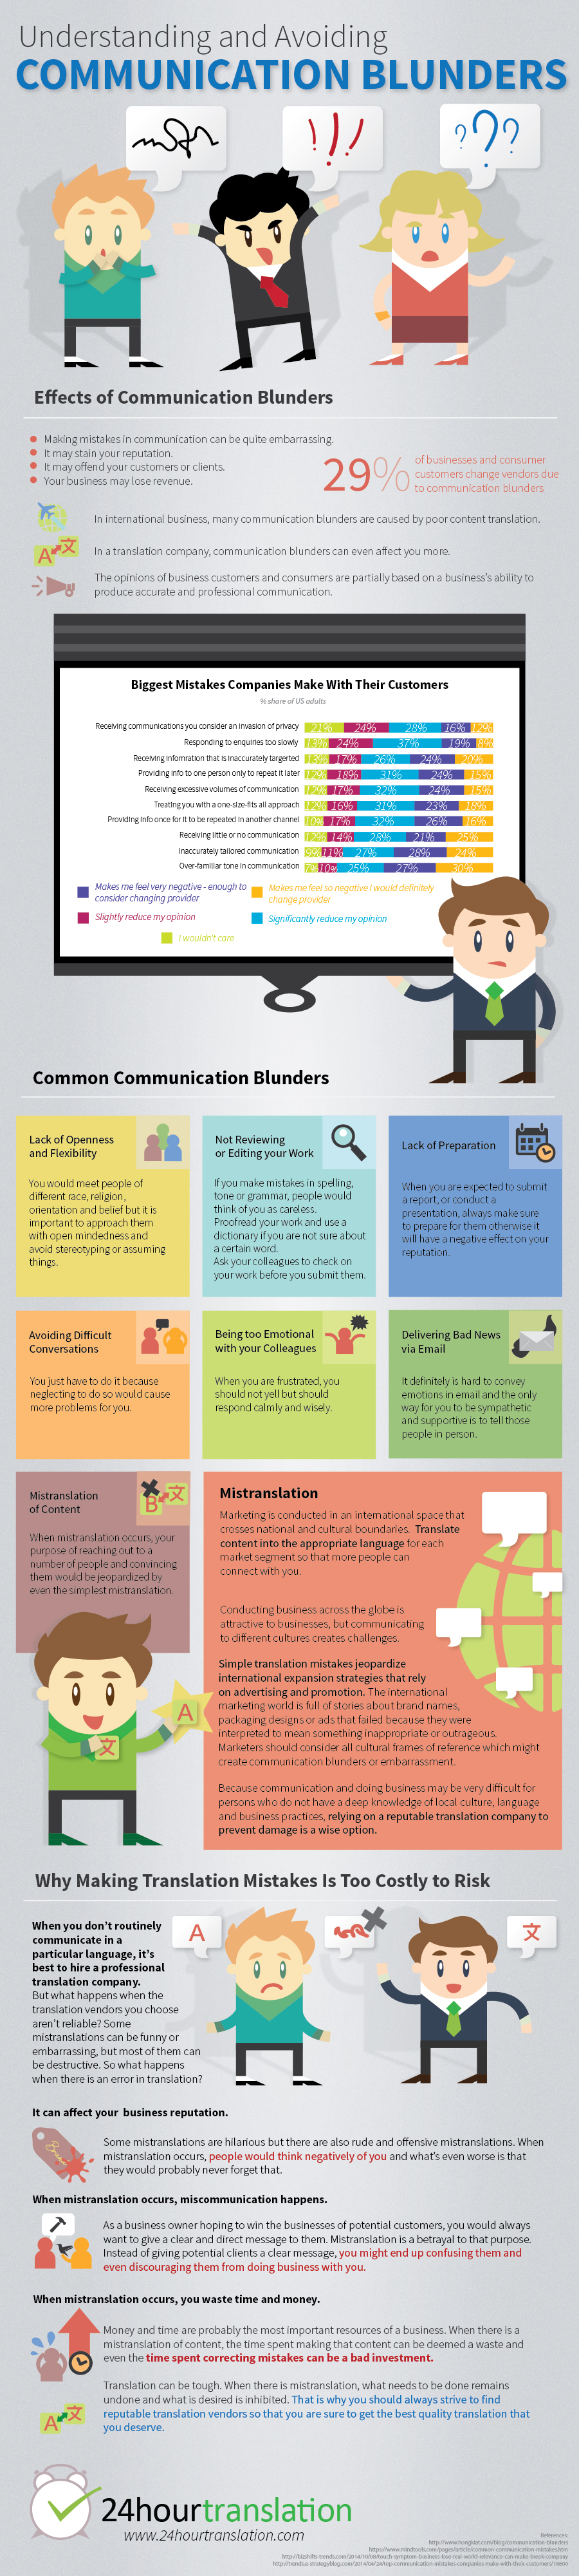 Common Communication Blunders Infographic